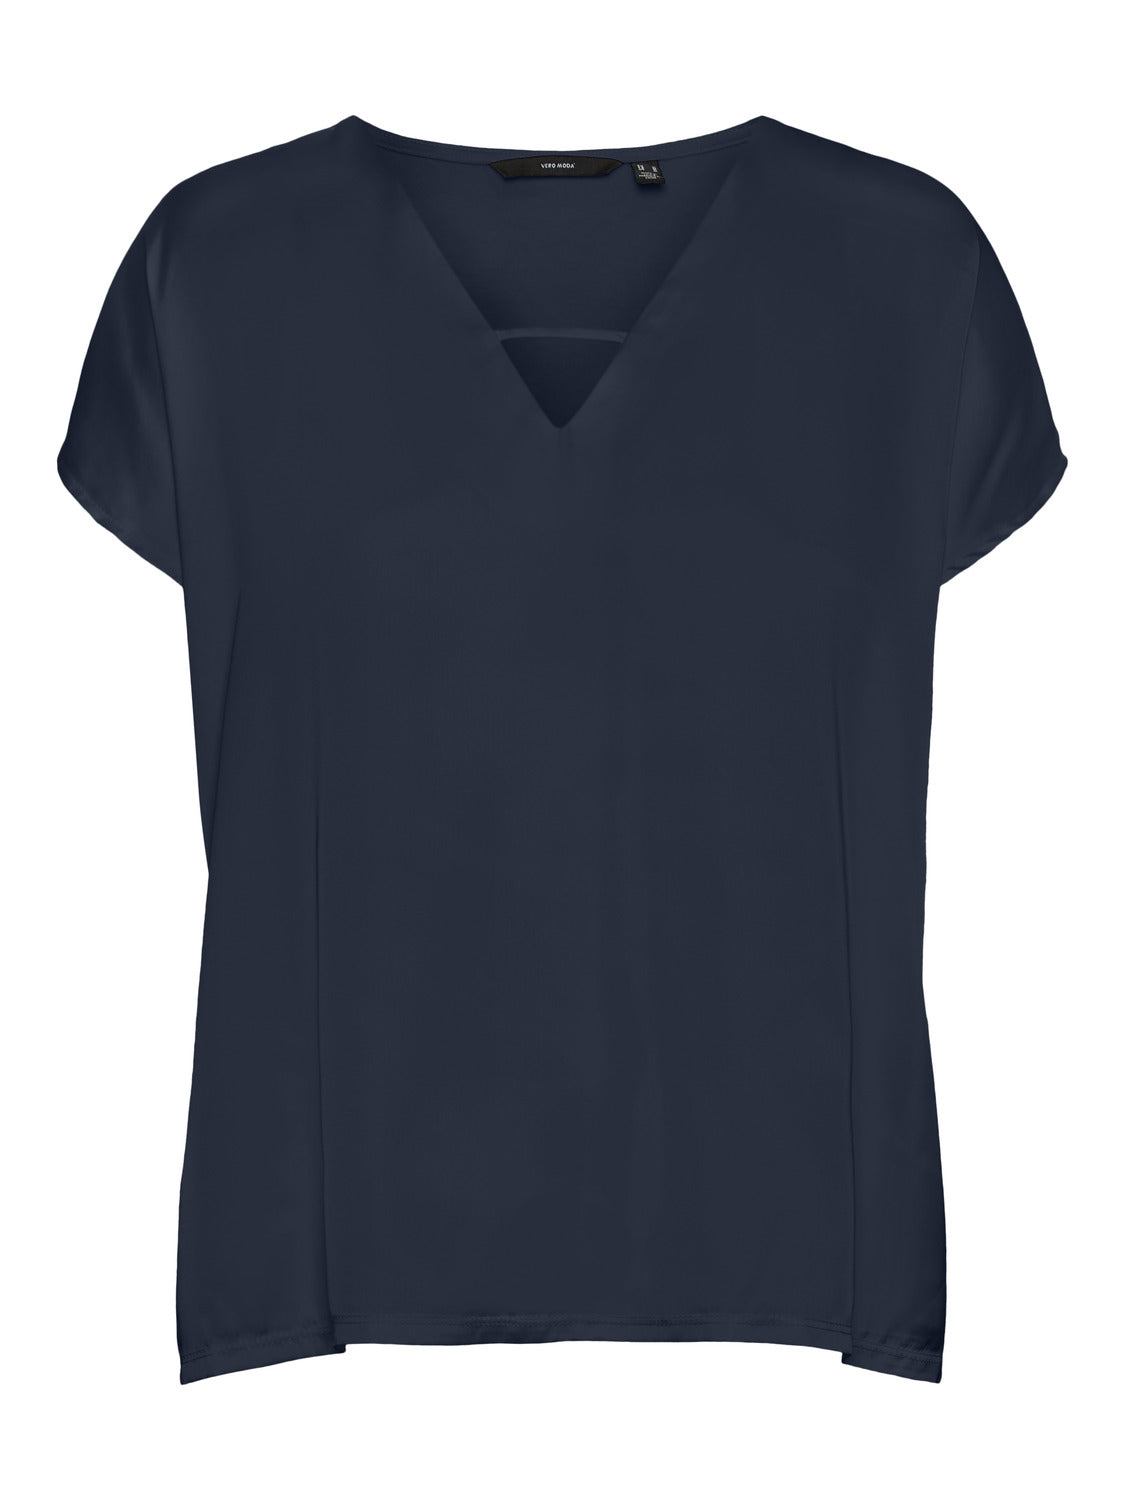 GLEE V-NECK TOP SS // NAVY BLAZER